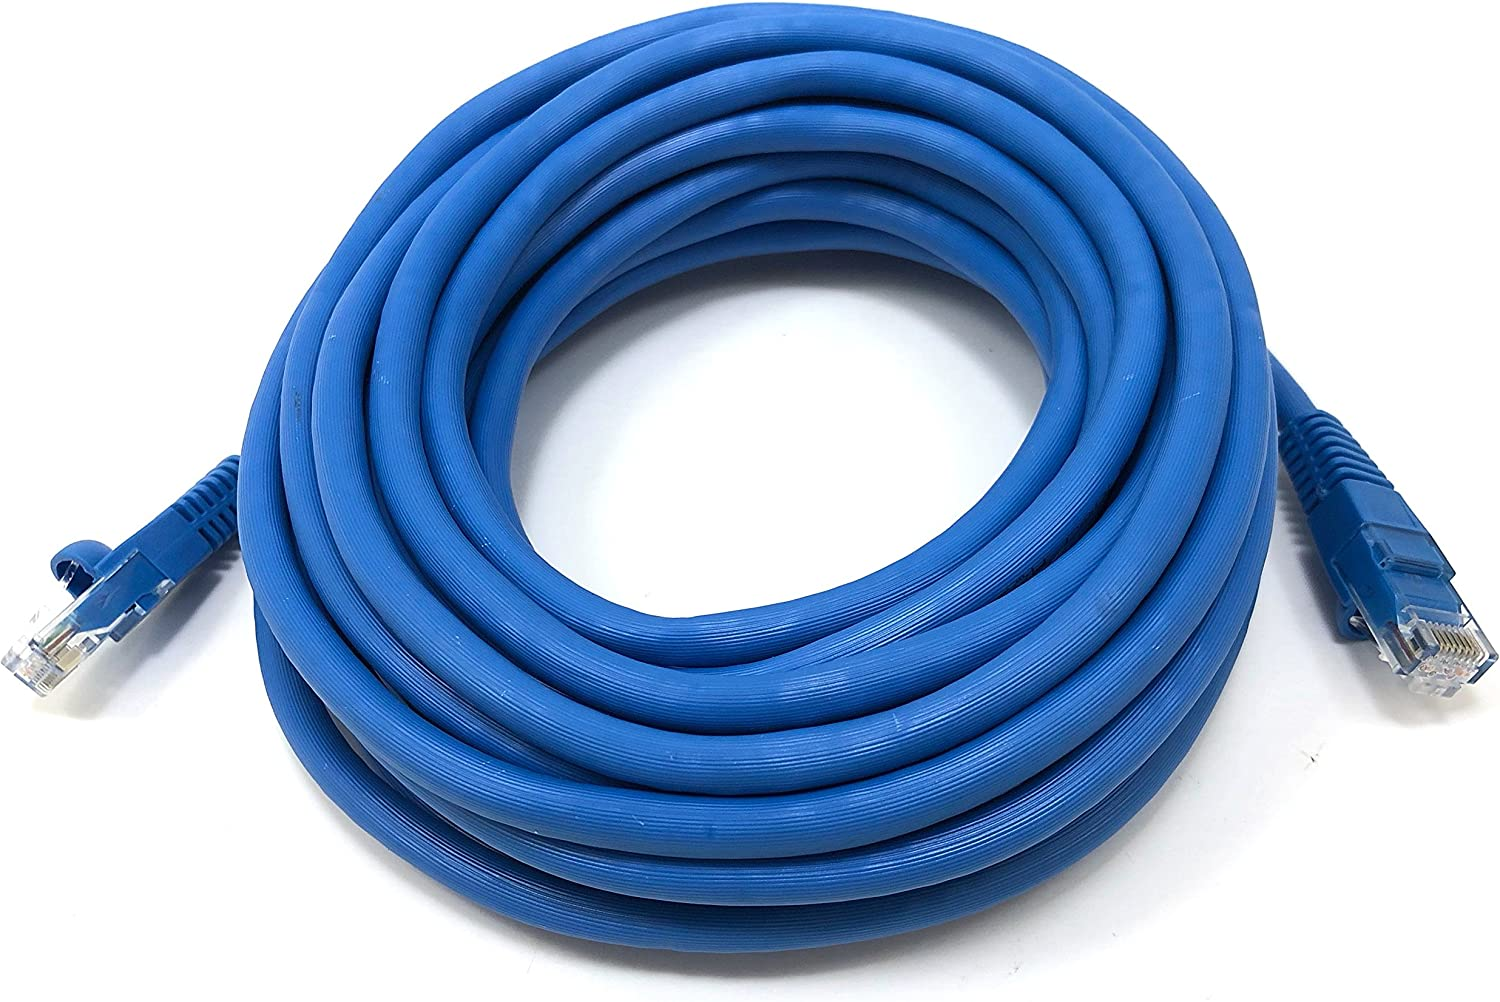 Micro Connectors 7 feet Augmented CAT 6A 10GbE UTP Molded Snagless Patch Cable -Blue E09-007BL Inc